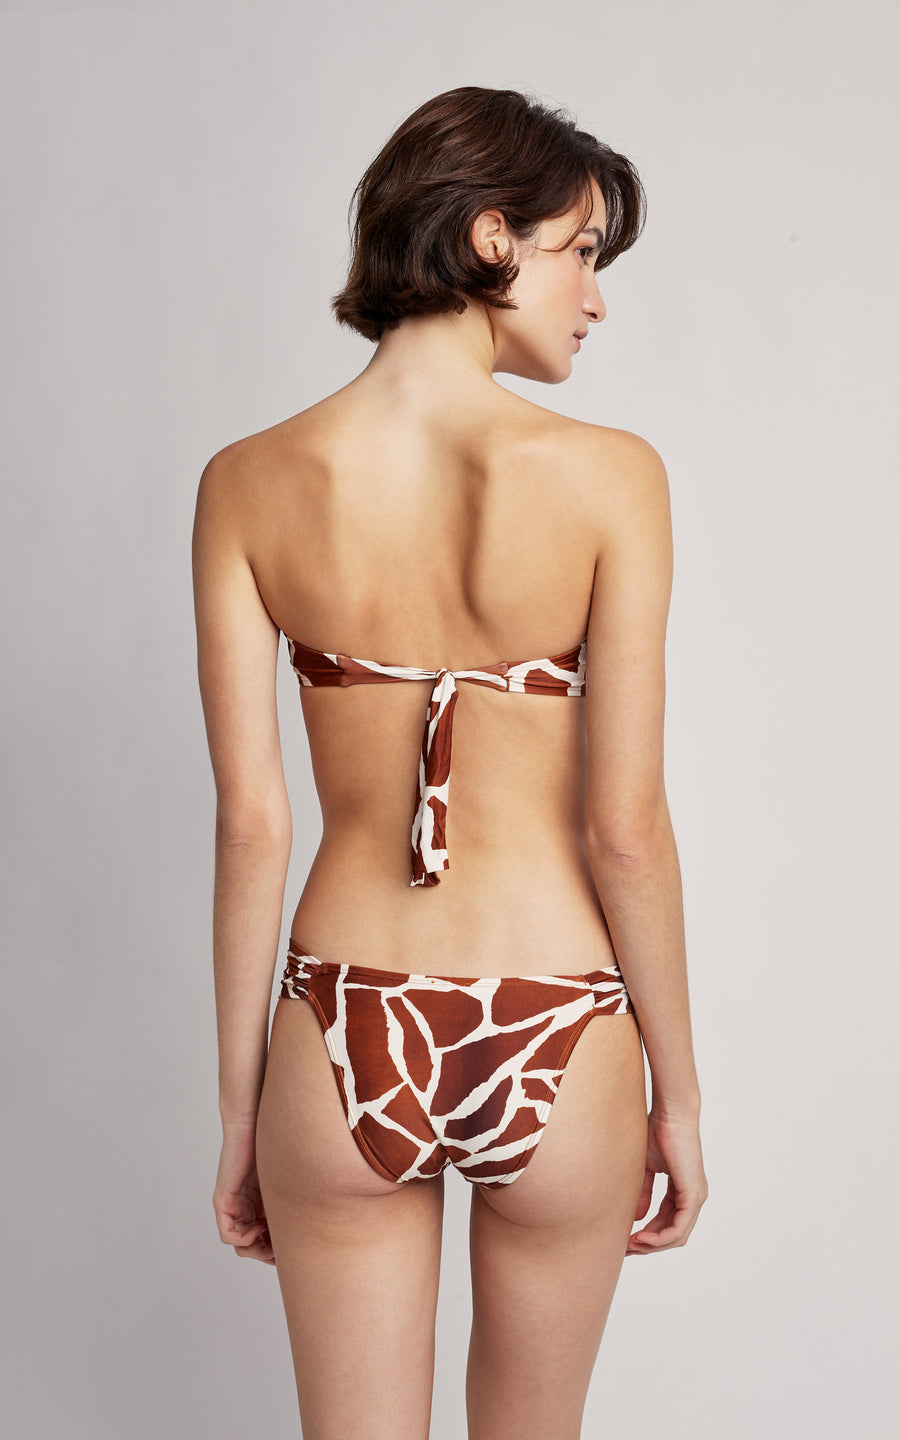 Giraffe Bikini Embellished Bandeau Top and Draped Bottom